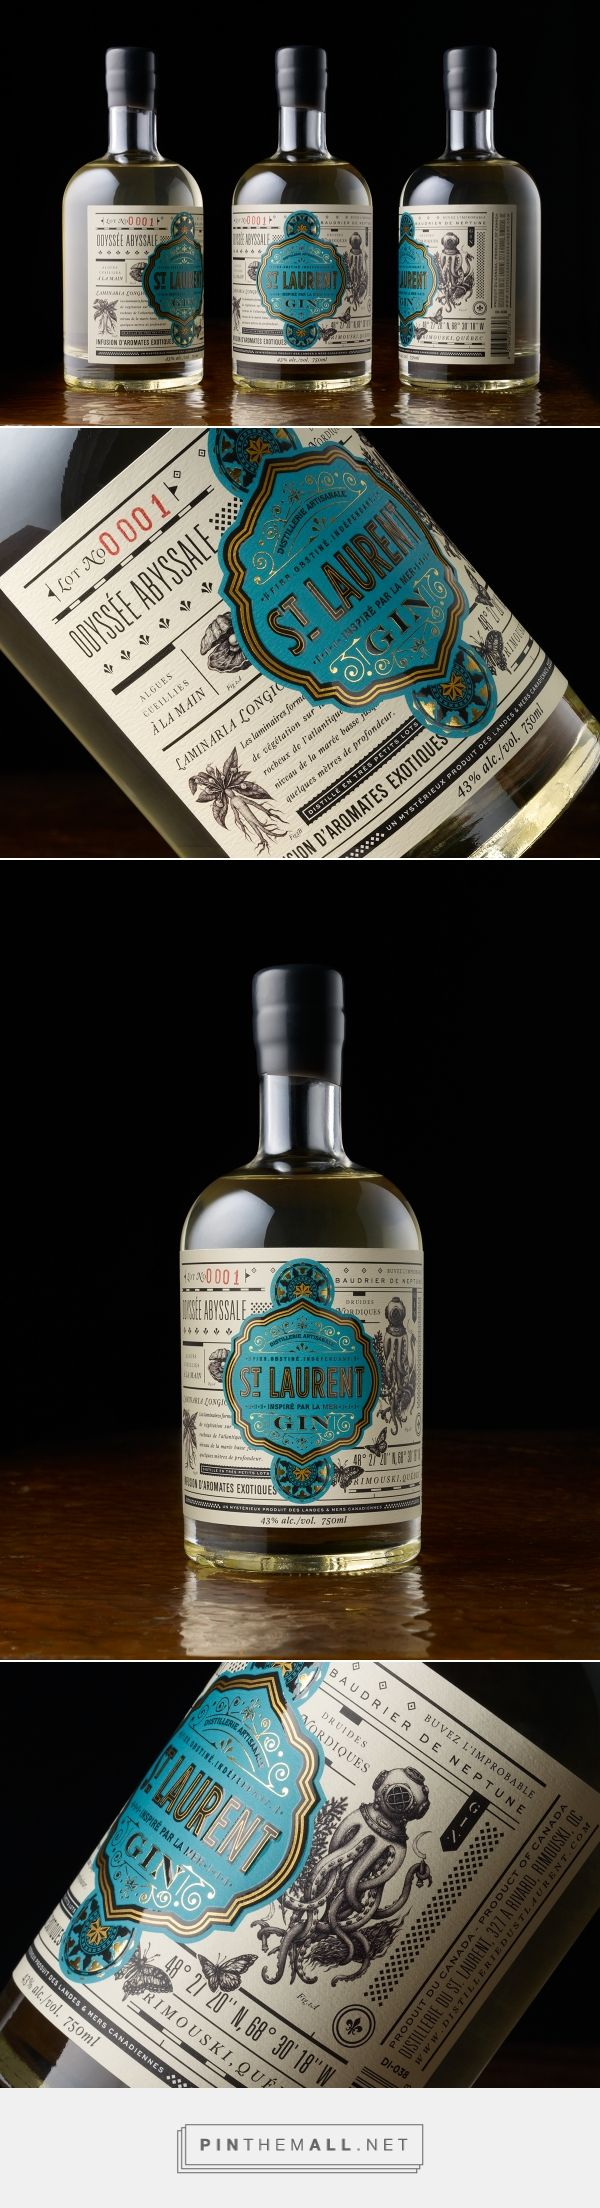 St. Laurent Gin on Behance - created via https://pinthemall.net